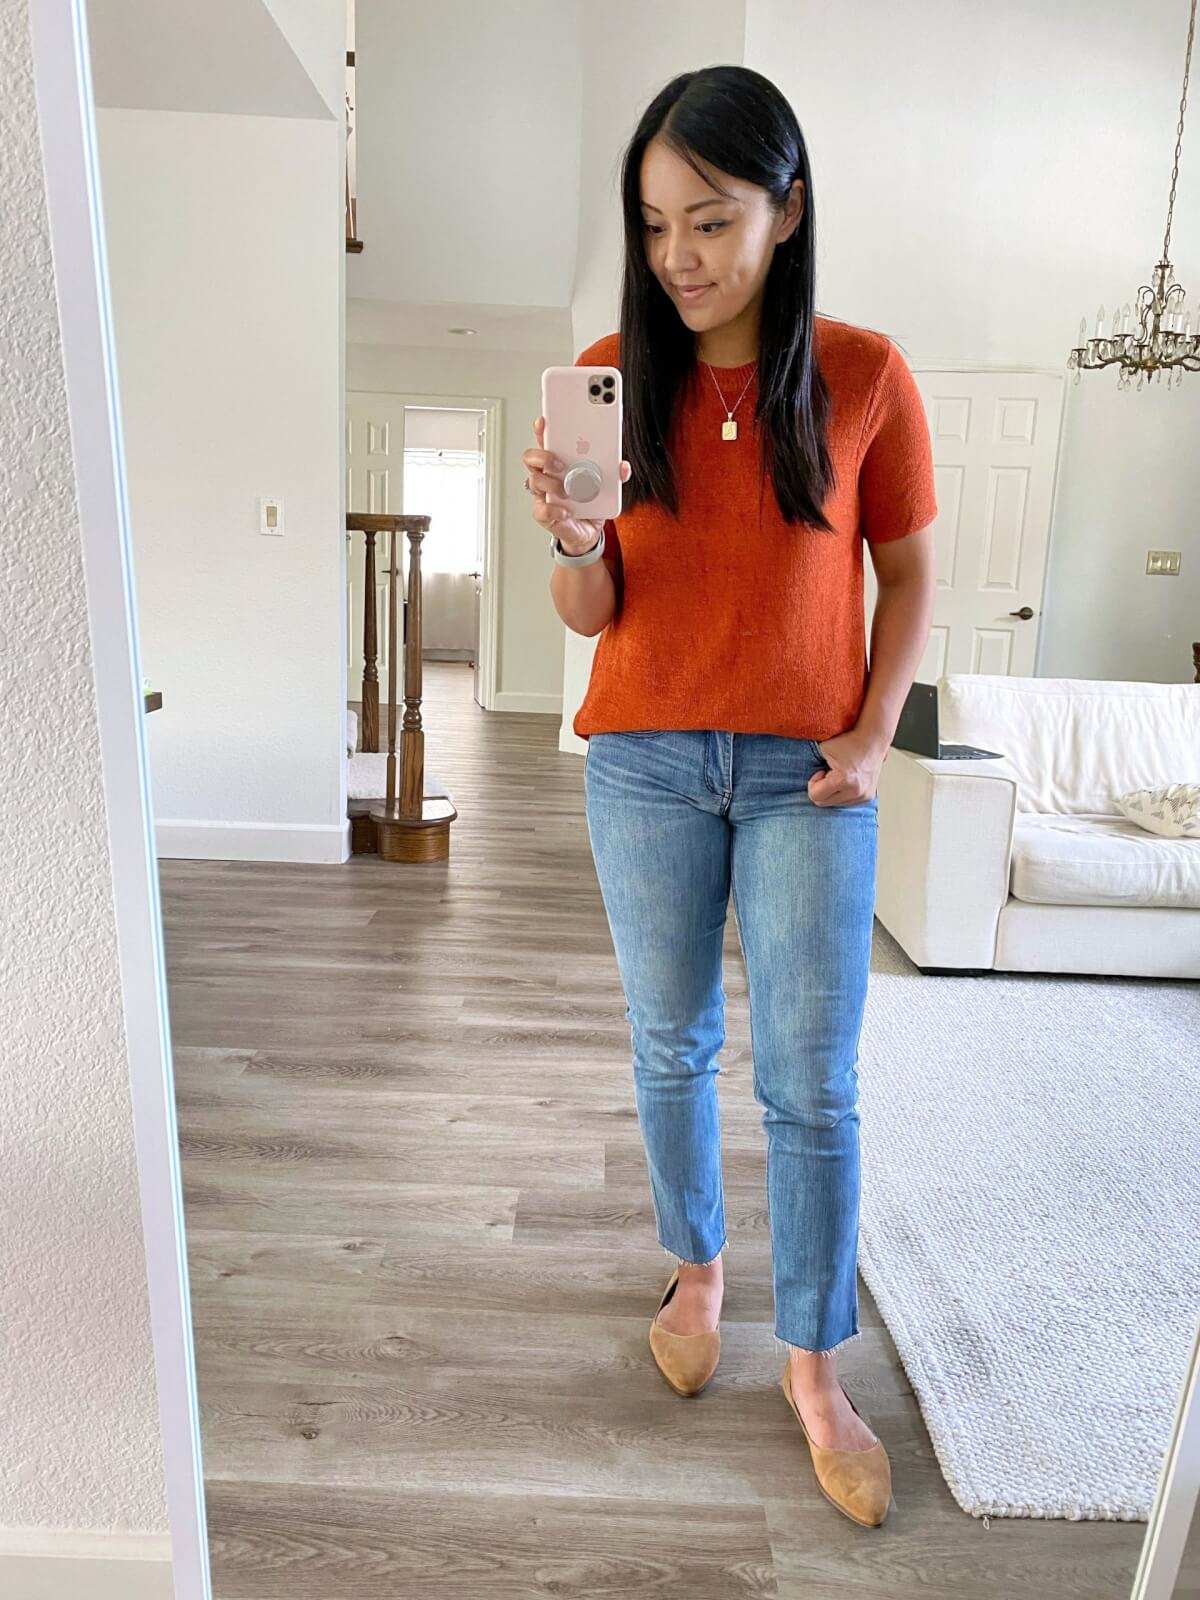 Nicer Casual Outfit early fall: Amazon rust short sleeve sweater + wit & wisdom light straight leg jeans + tan suede flats + gold pendant necklace